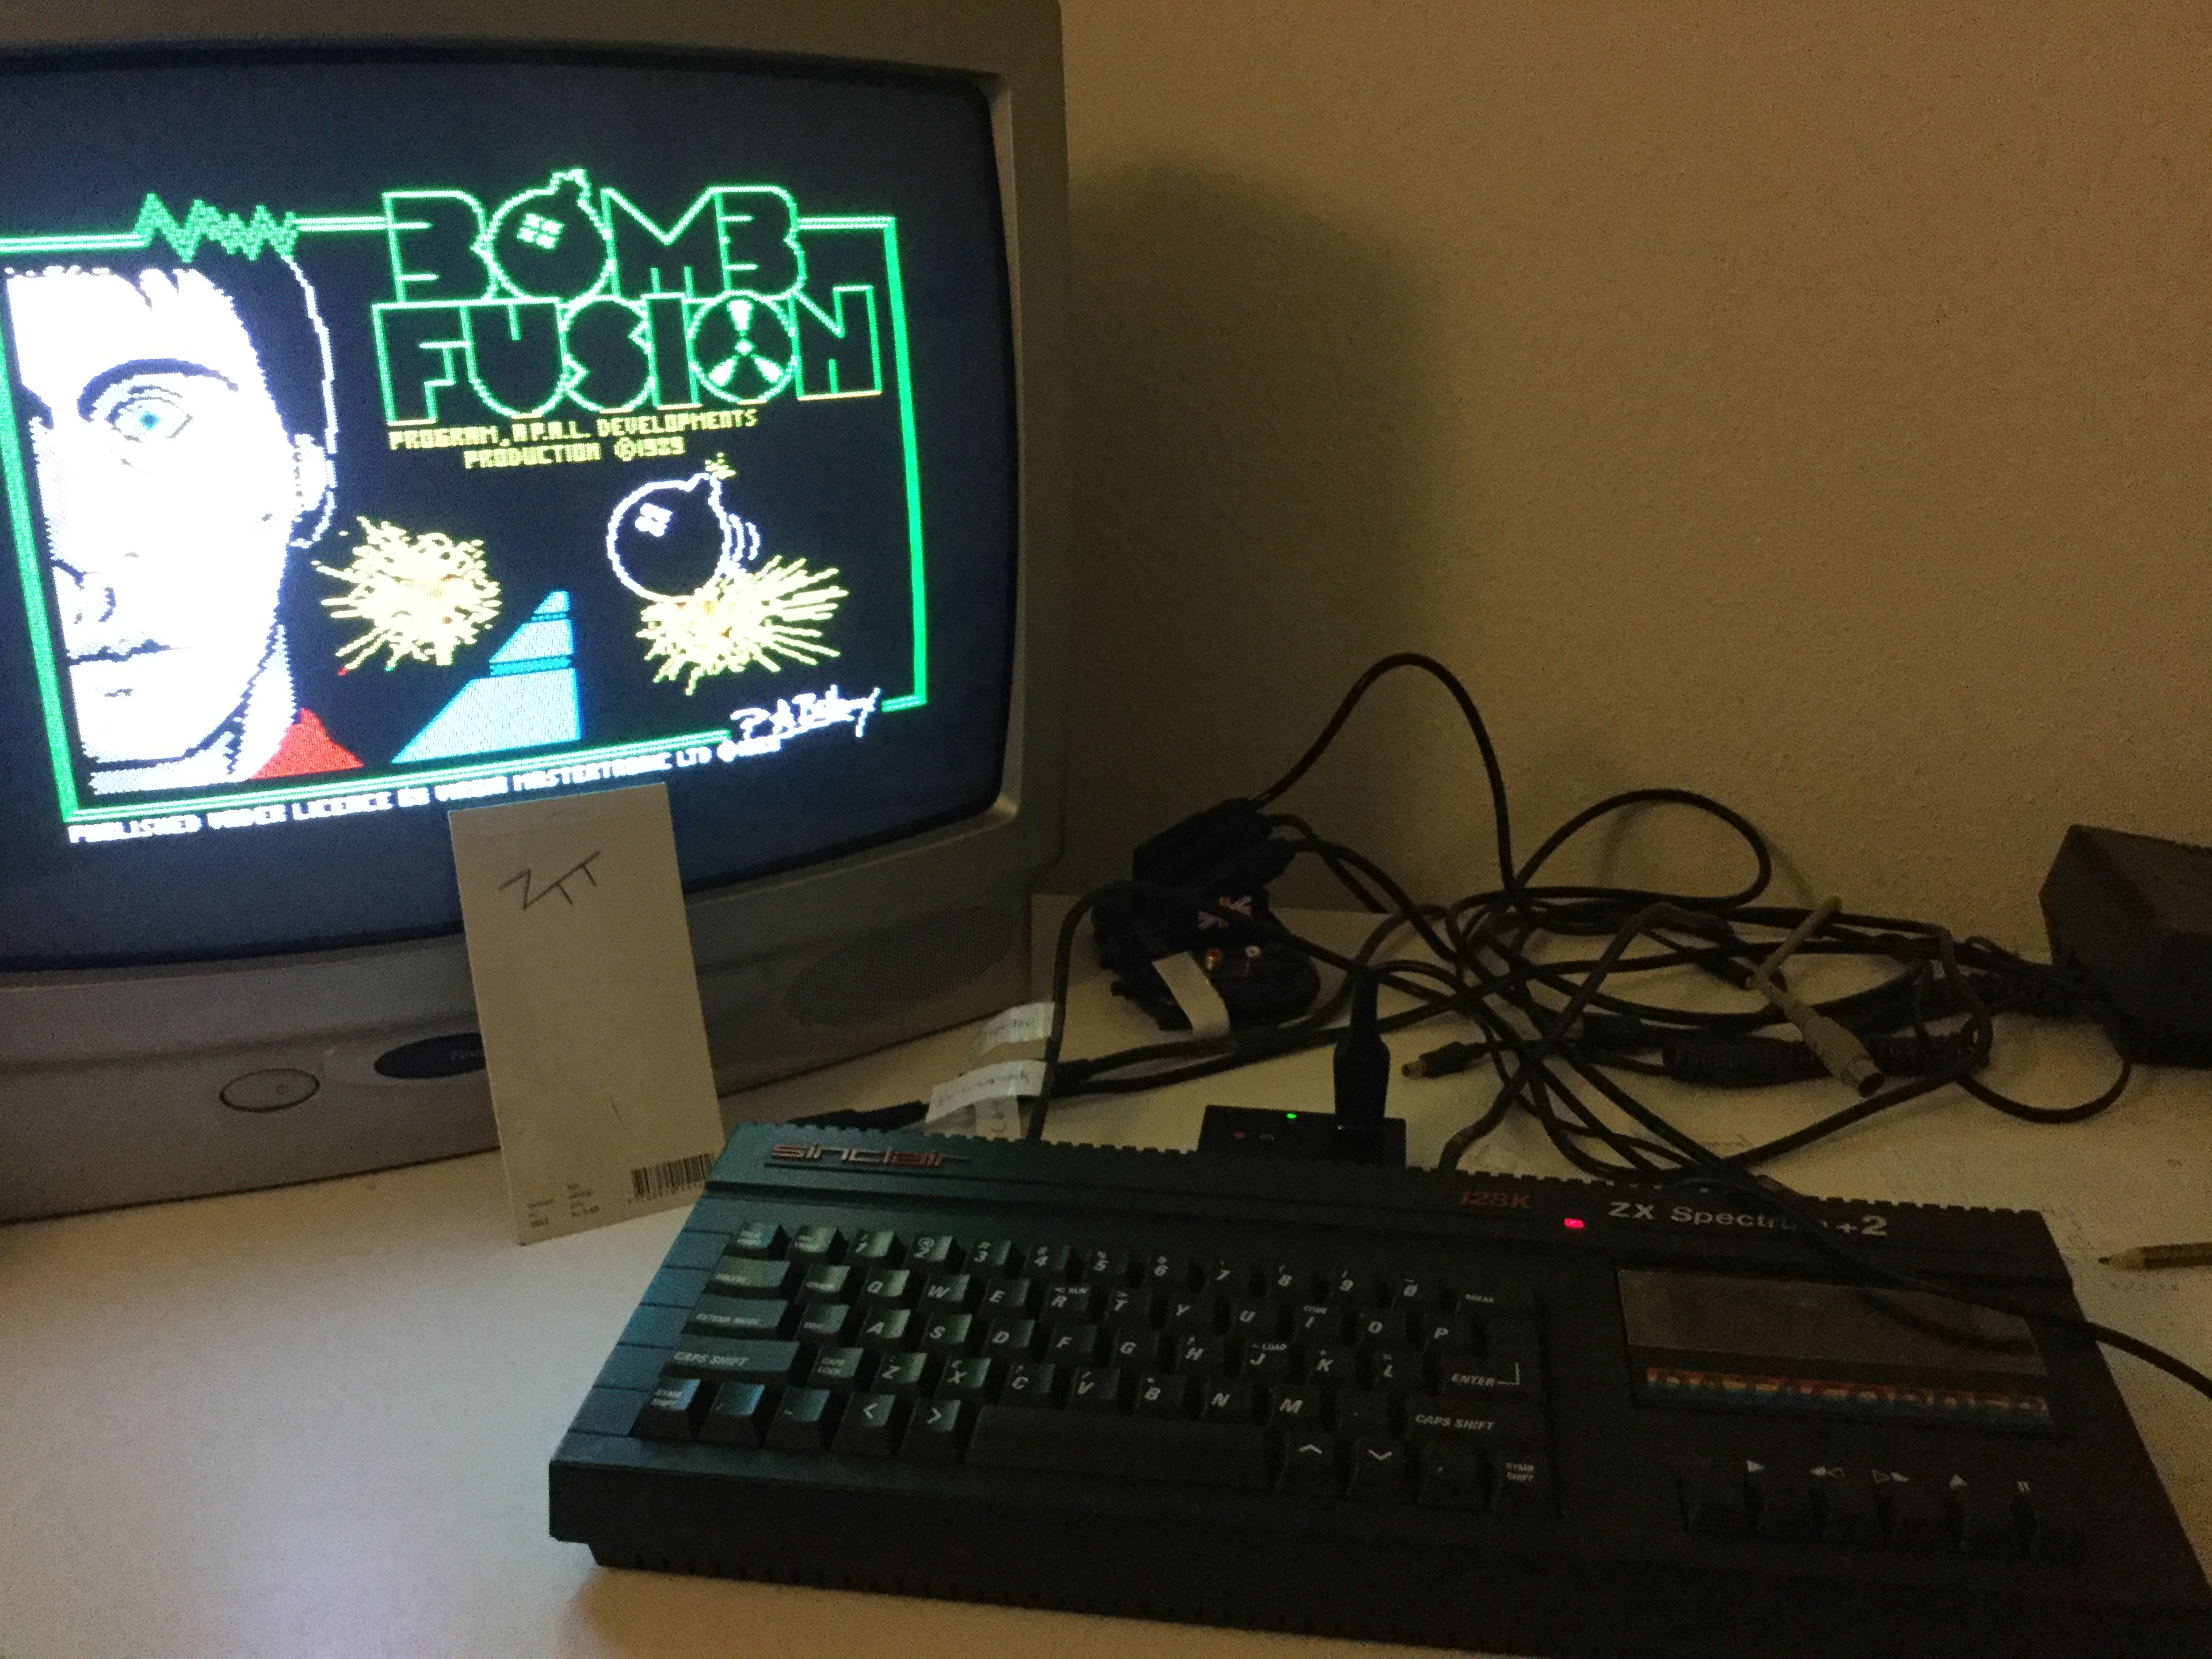 Frankie: Bombfusion (ZX Spectrum) 165,485 points on 2018-08-13 12:22:22